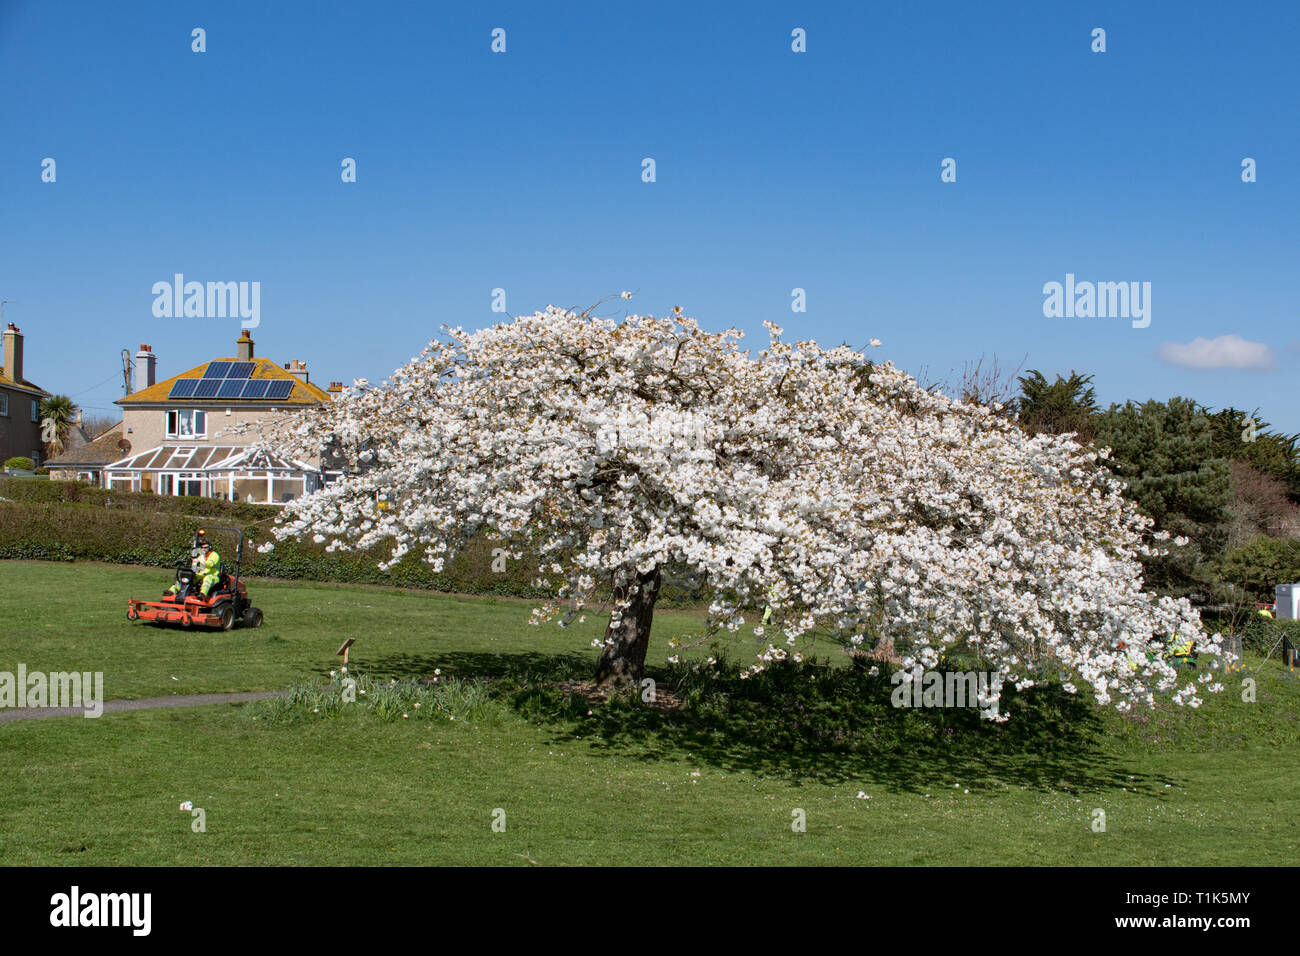 Newlyn, Cornwall, UK. 27th Mar, 2019. UK Weather. Bright sunny afternoon at Wherrytown, near Newlyn in Cornwall. Gardeners were out mowing the grass around this blossom tree. Credit: Simon Maycock/Alamy Live News Stock Photo